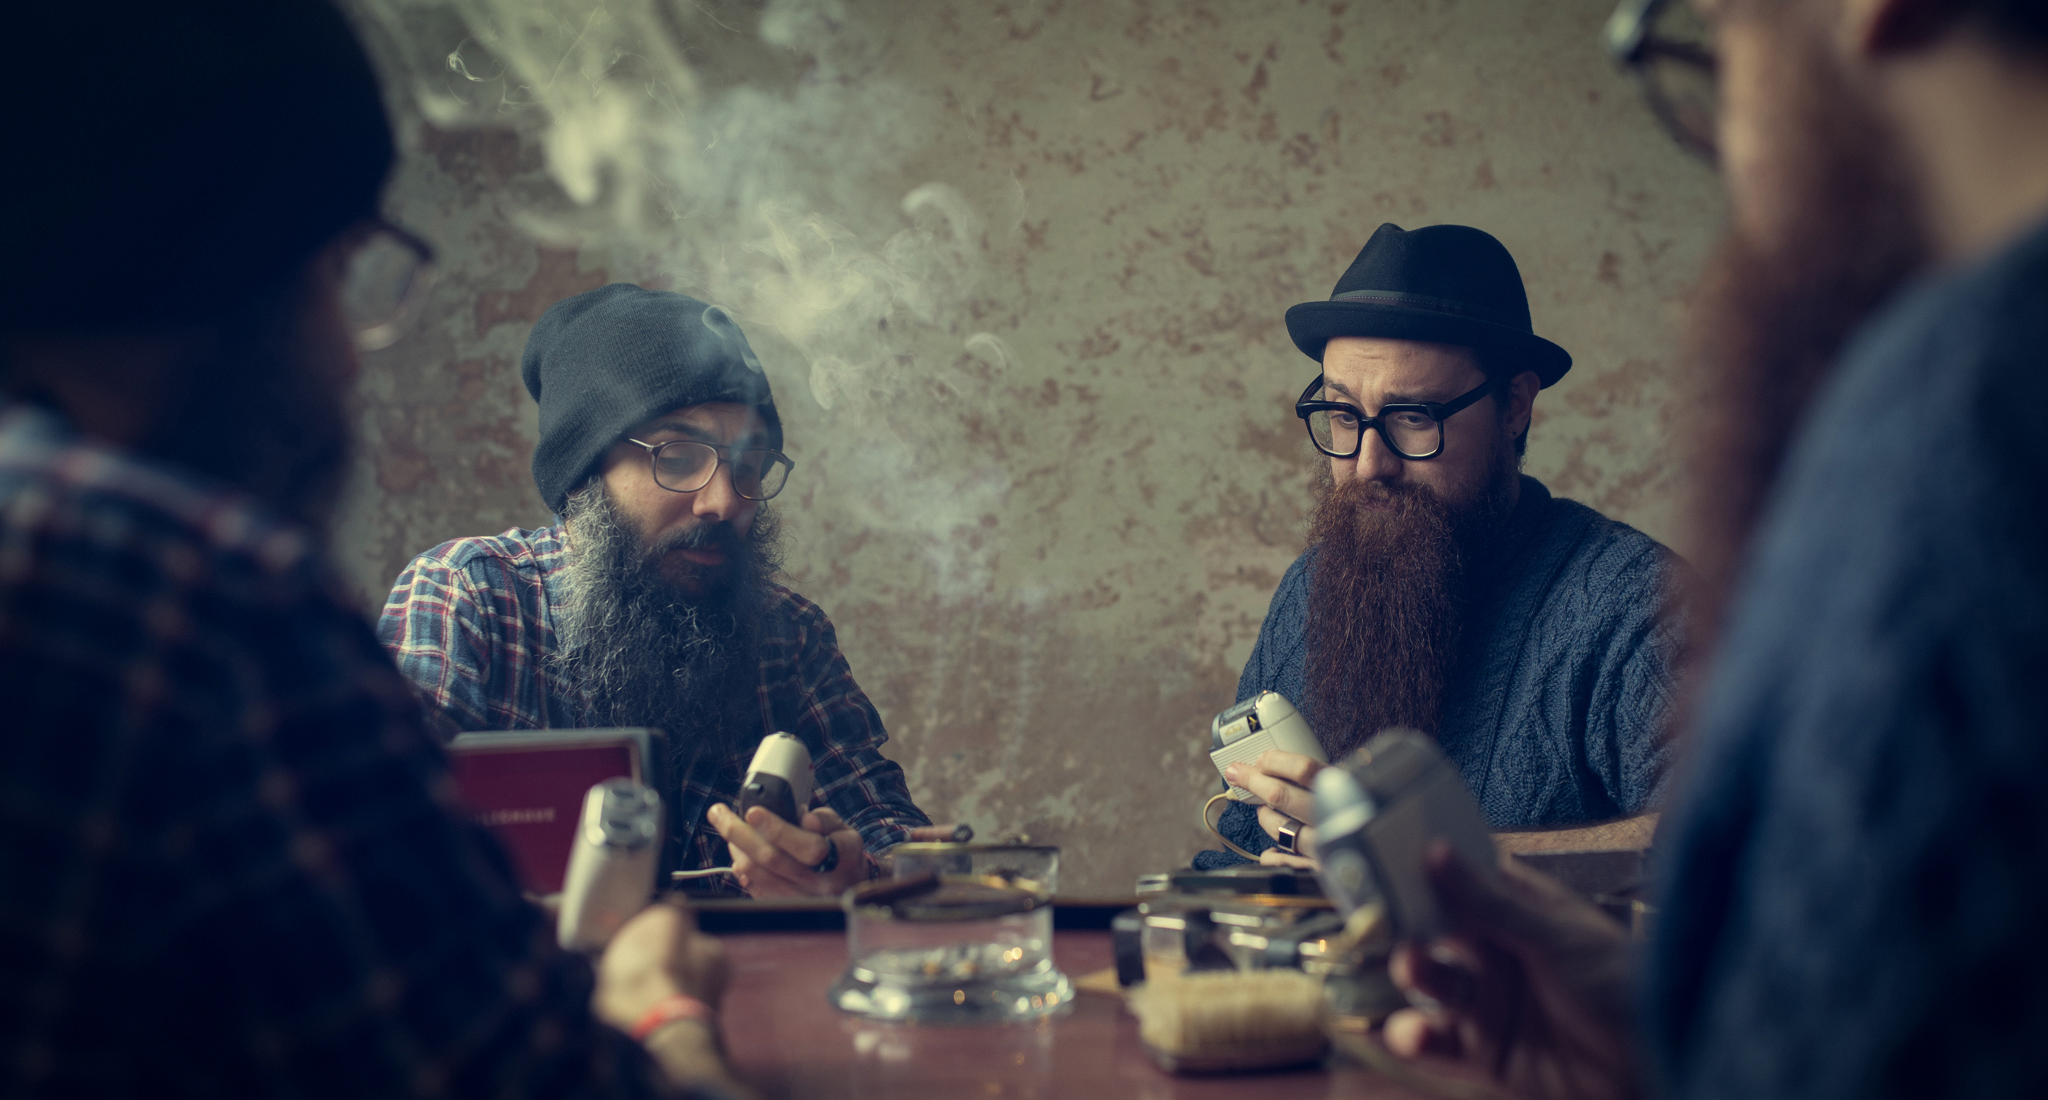 Tho Beards, one Mirror. Commercial photo by Luca Zizioli.